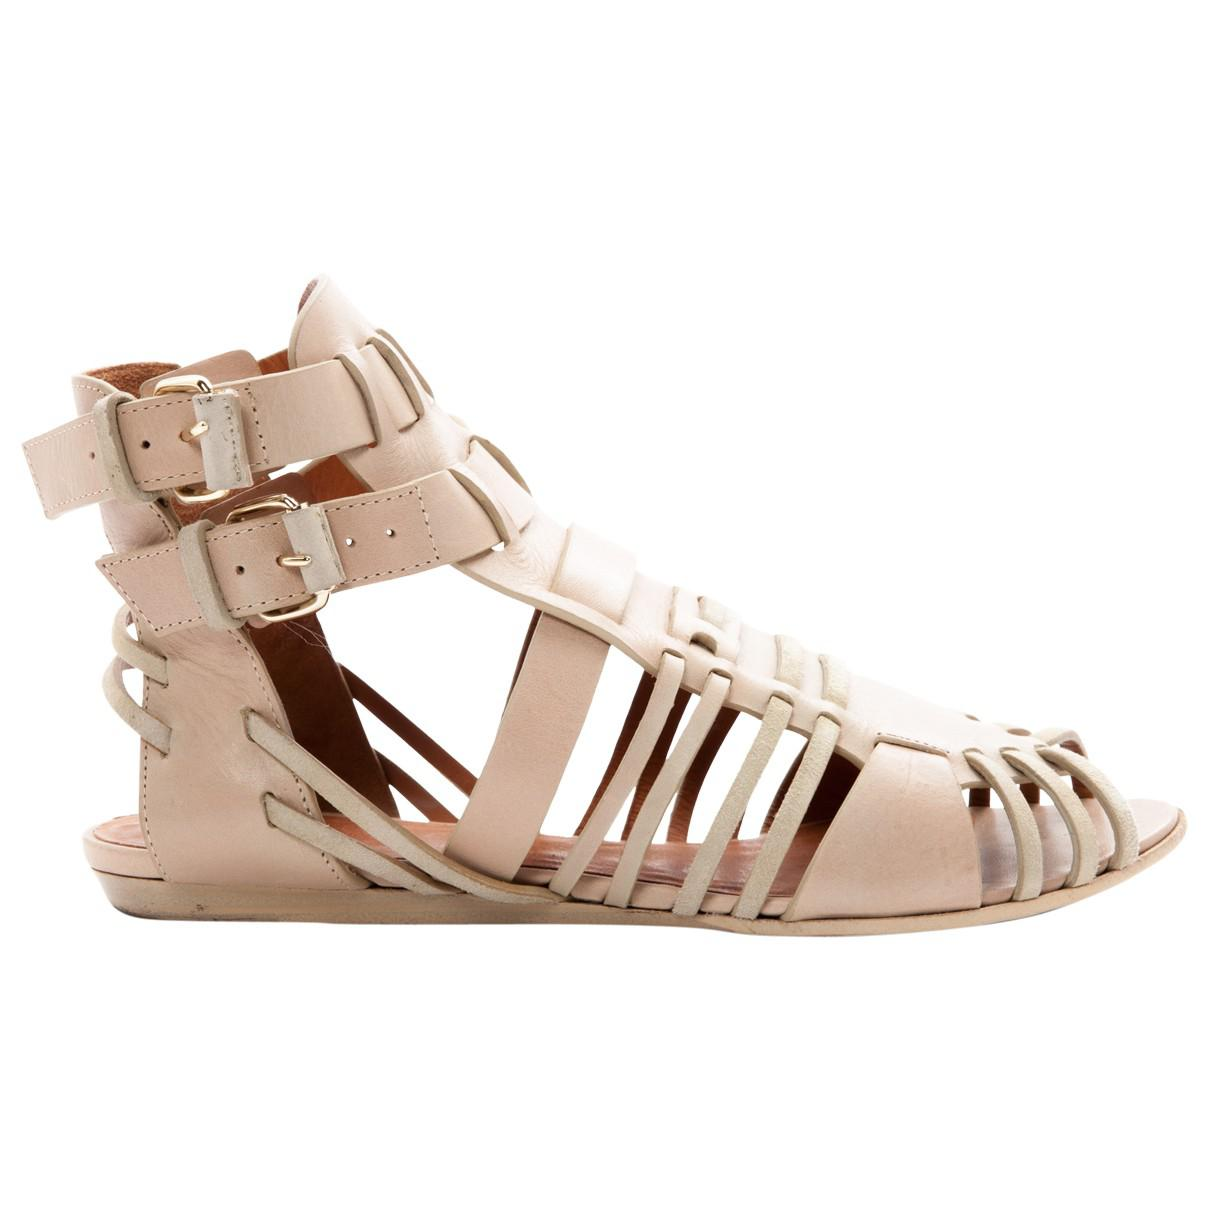 Pre-owned - Sandals Givenchy Get Authentic al4ysZ